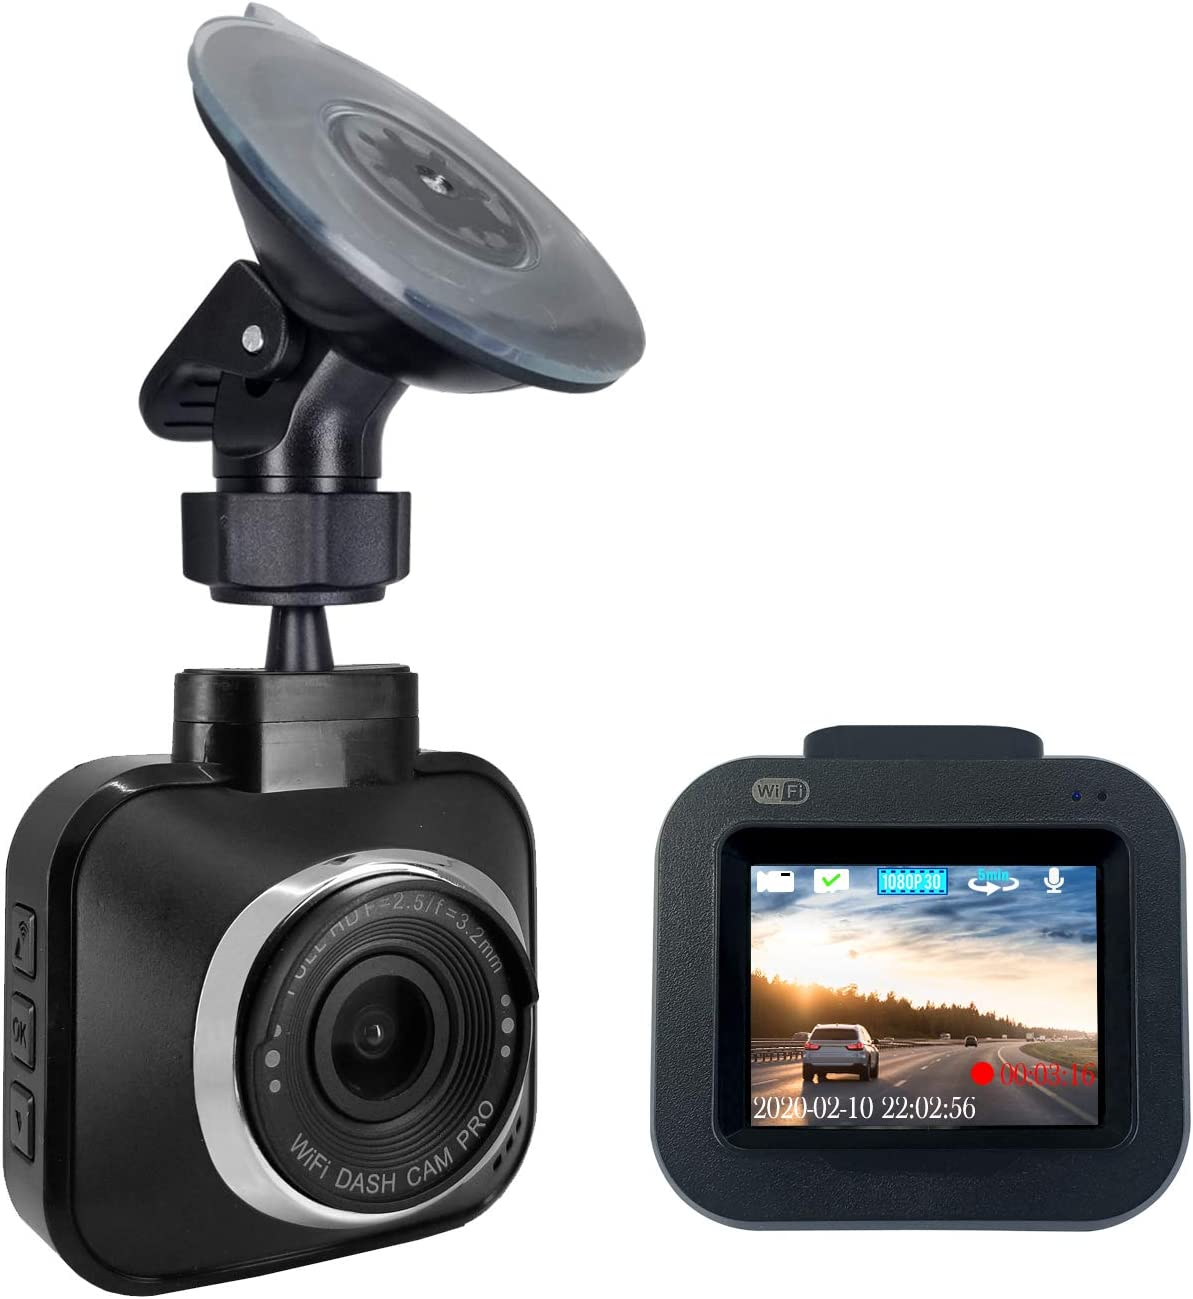 """Dash Cam Pro Wi-Fi - As Seen on TV Dash Cam 360°, Motion Detection, 2.0"""" LCD, 1080p HD, Dashboard Camera Video Recorder, Loop Recording, Night-Mode"""